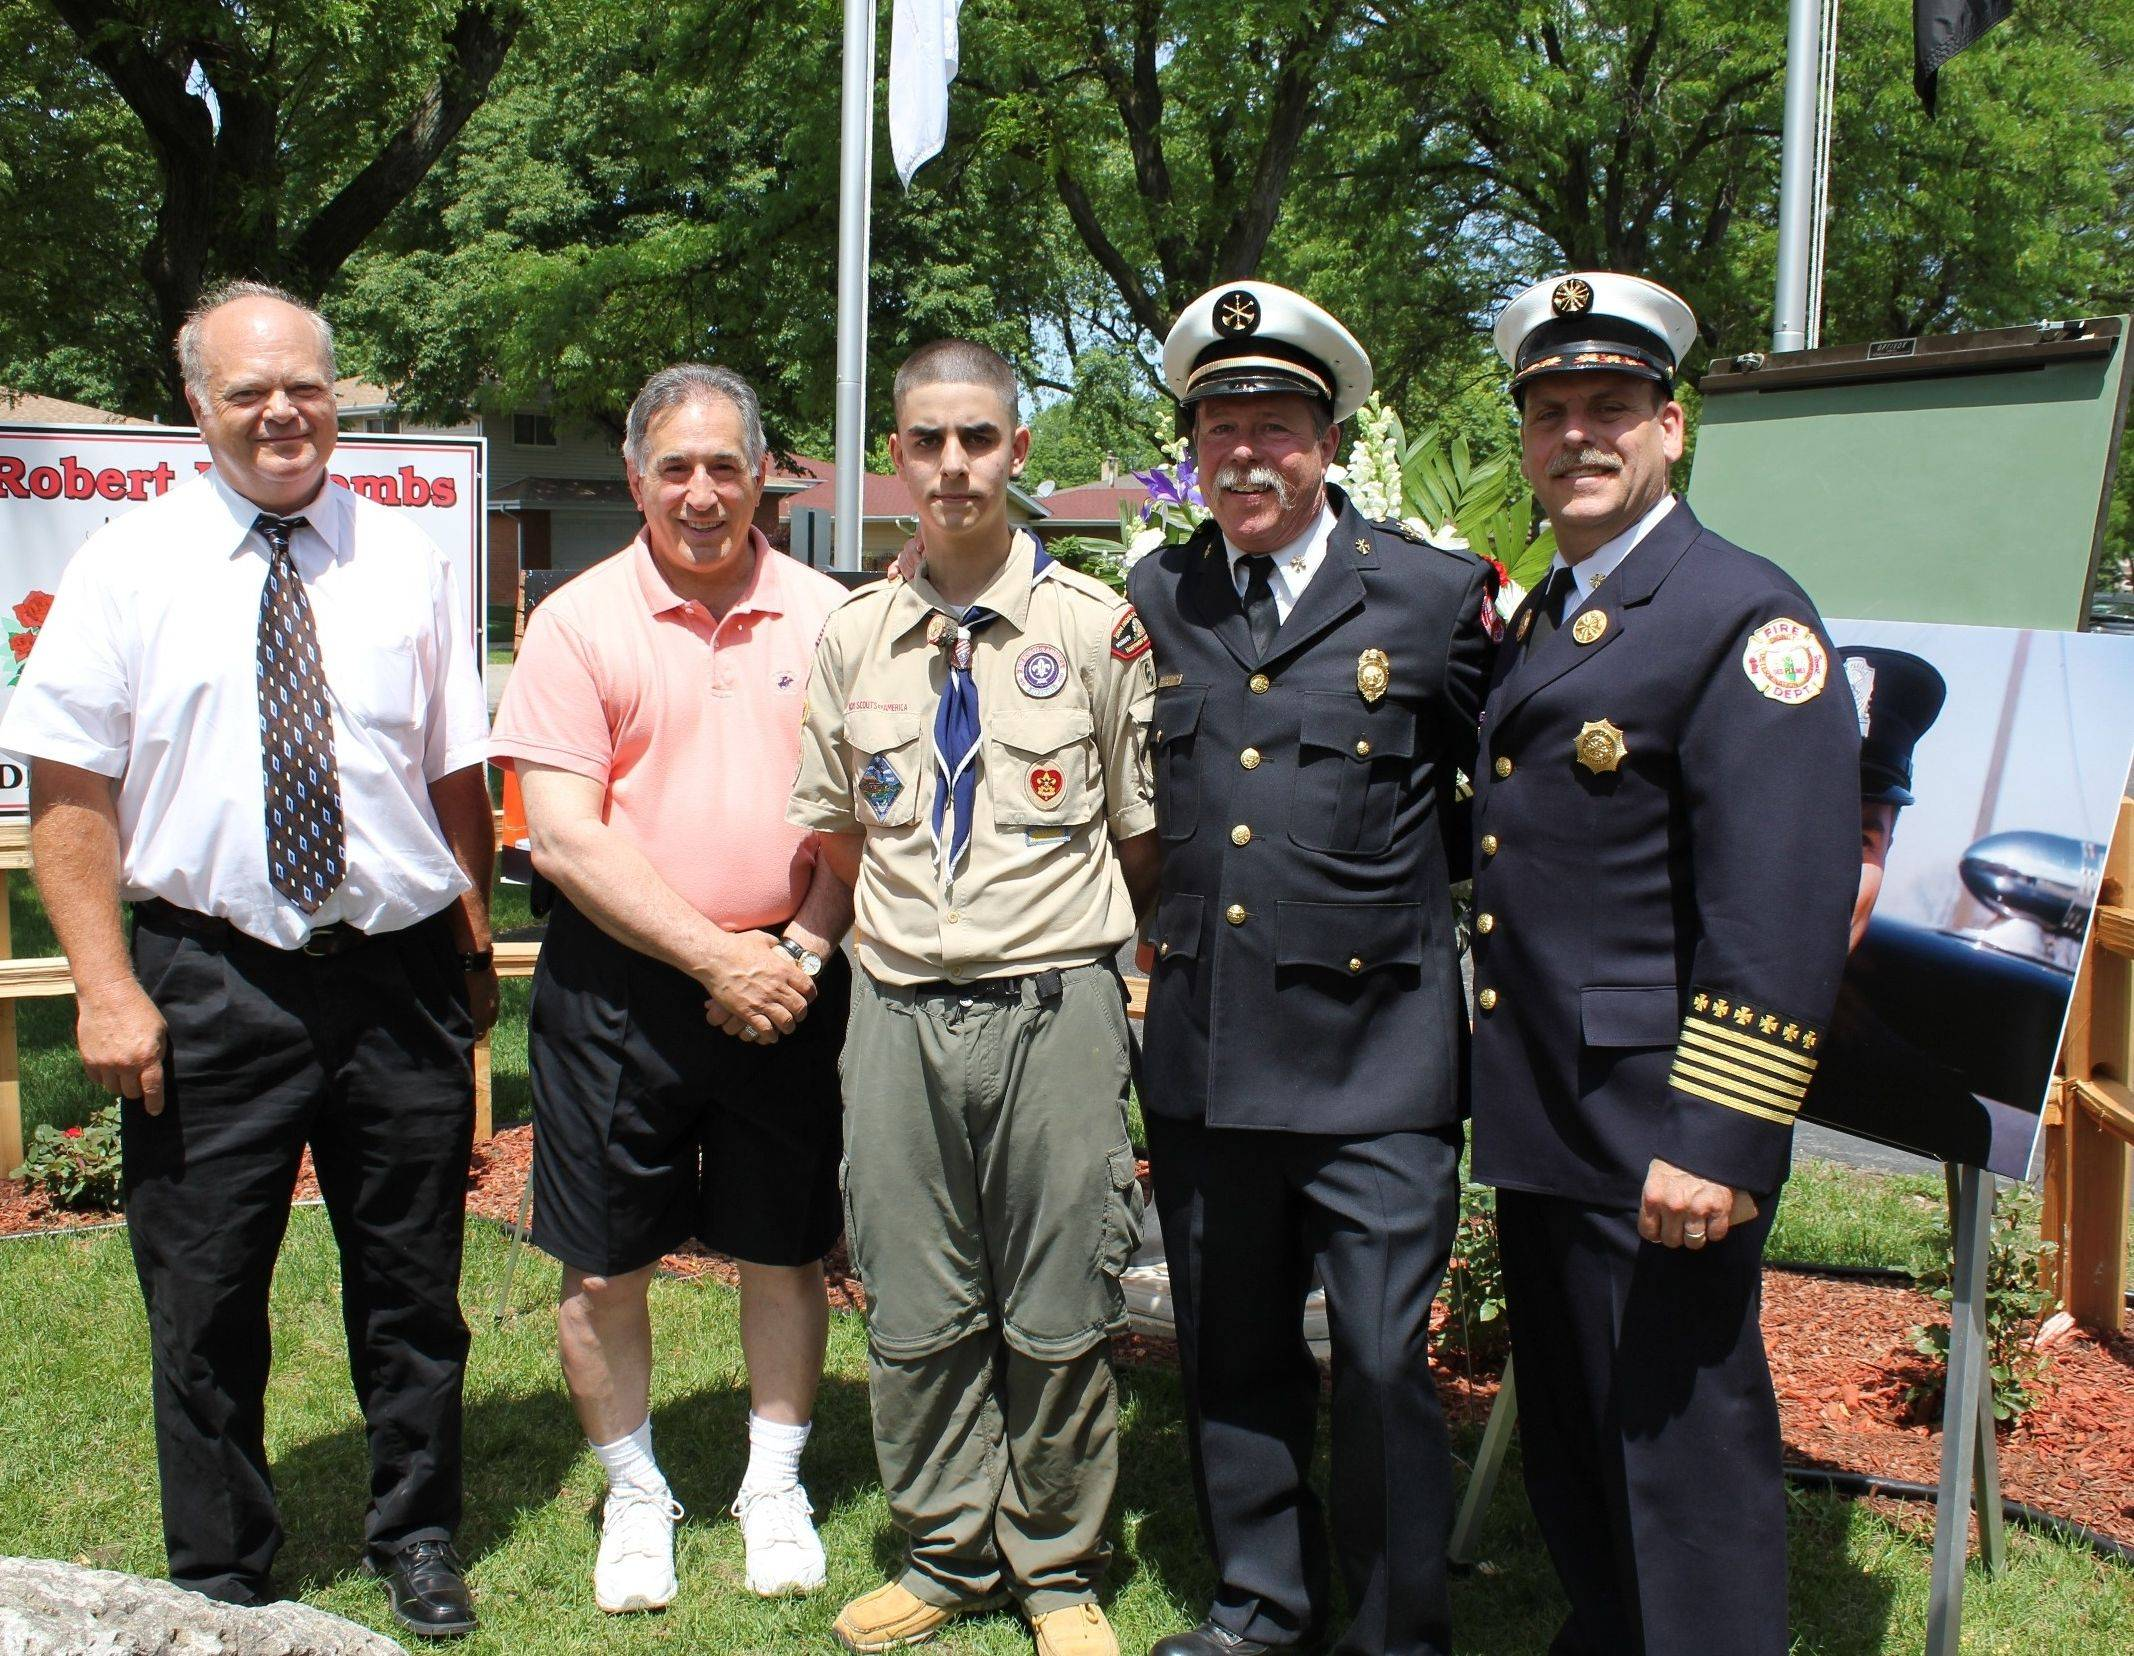 Pictured, left, Mark Coombs, son of the late Des Plaines Firefighter Robert P. Coombs; Des Plaines Mayor Martin J. Moylan; Max Jacobs, Des Plaines resident and Eagle Scout candidate, Boy Scout Troop 62; Battalion Chief Mike Bronk, North Maine Fire Protection District; and Chief Alan Wax, Des Plaines Fire Department, at the Robert P. Coombs Memorial Rose Garden dedication. Jacobs was inspired to develop the rose garden after researching a small street sign that bears Coombs� name adjacent to Fire Station No. 3.